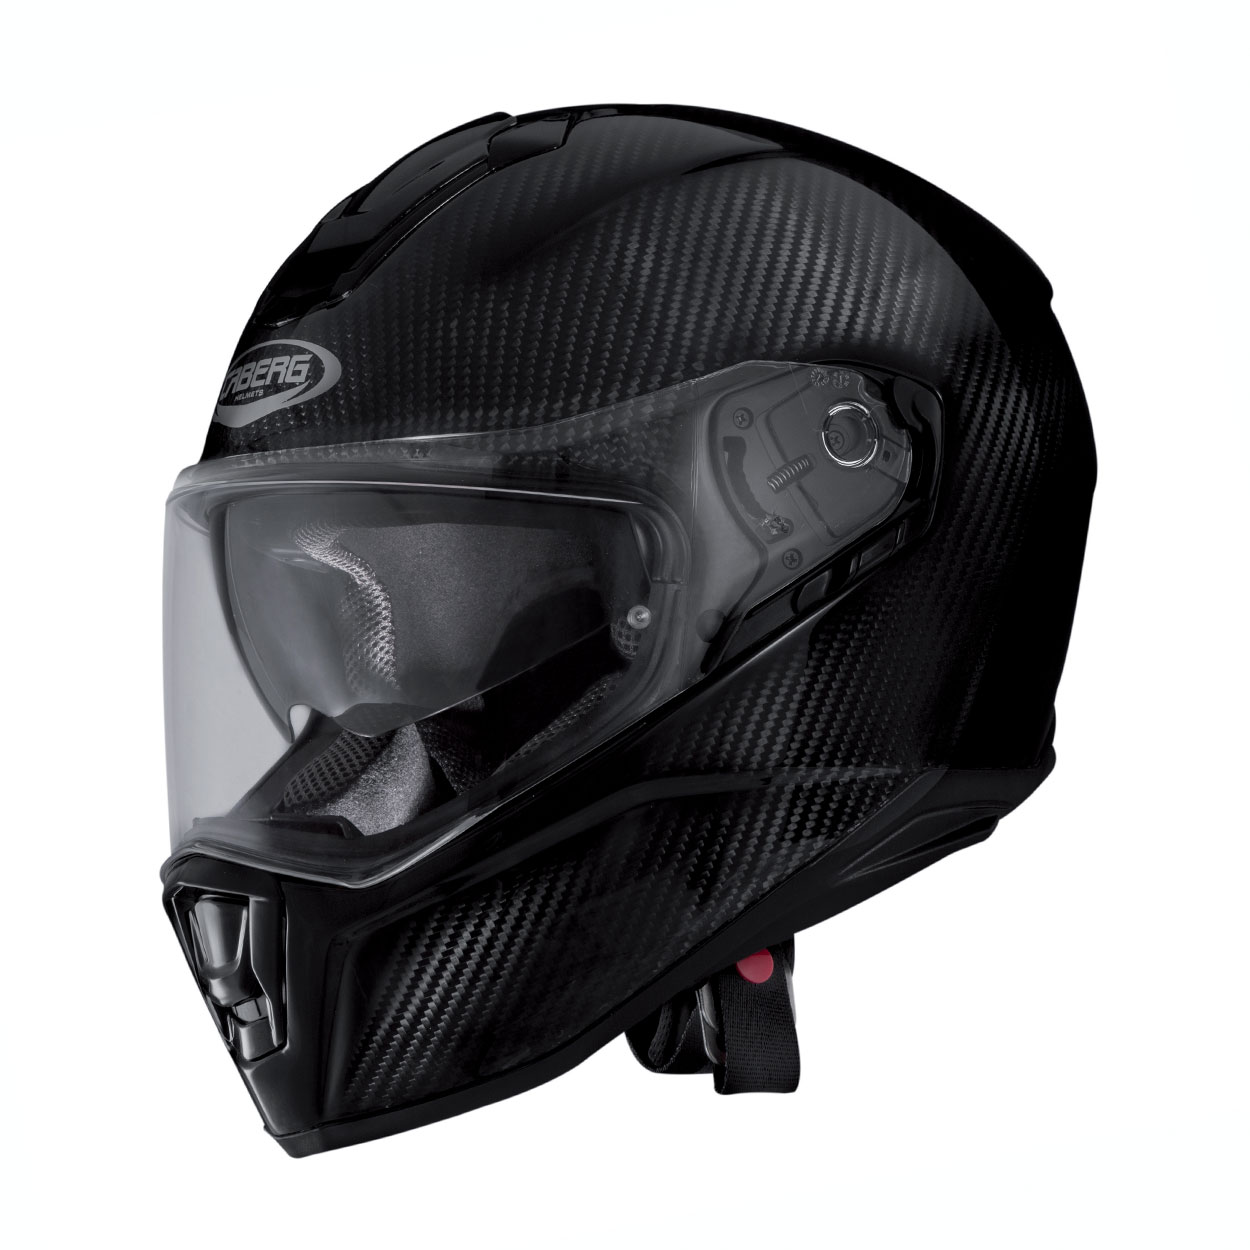 Caberg Helmet Review Why Cheap Is A Good Thing